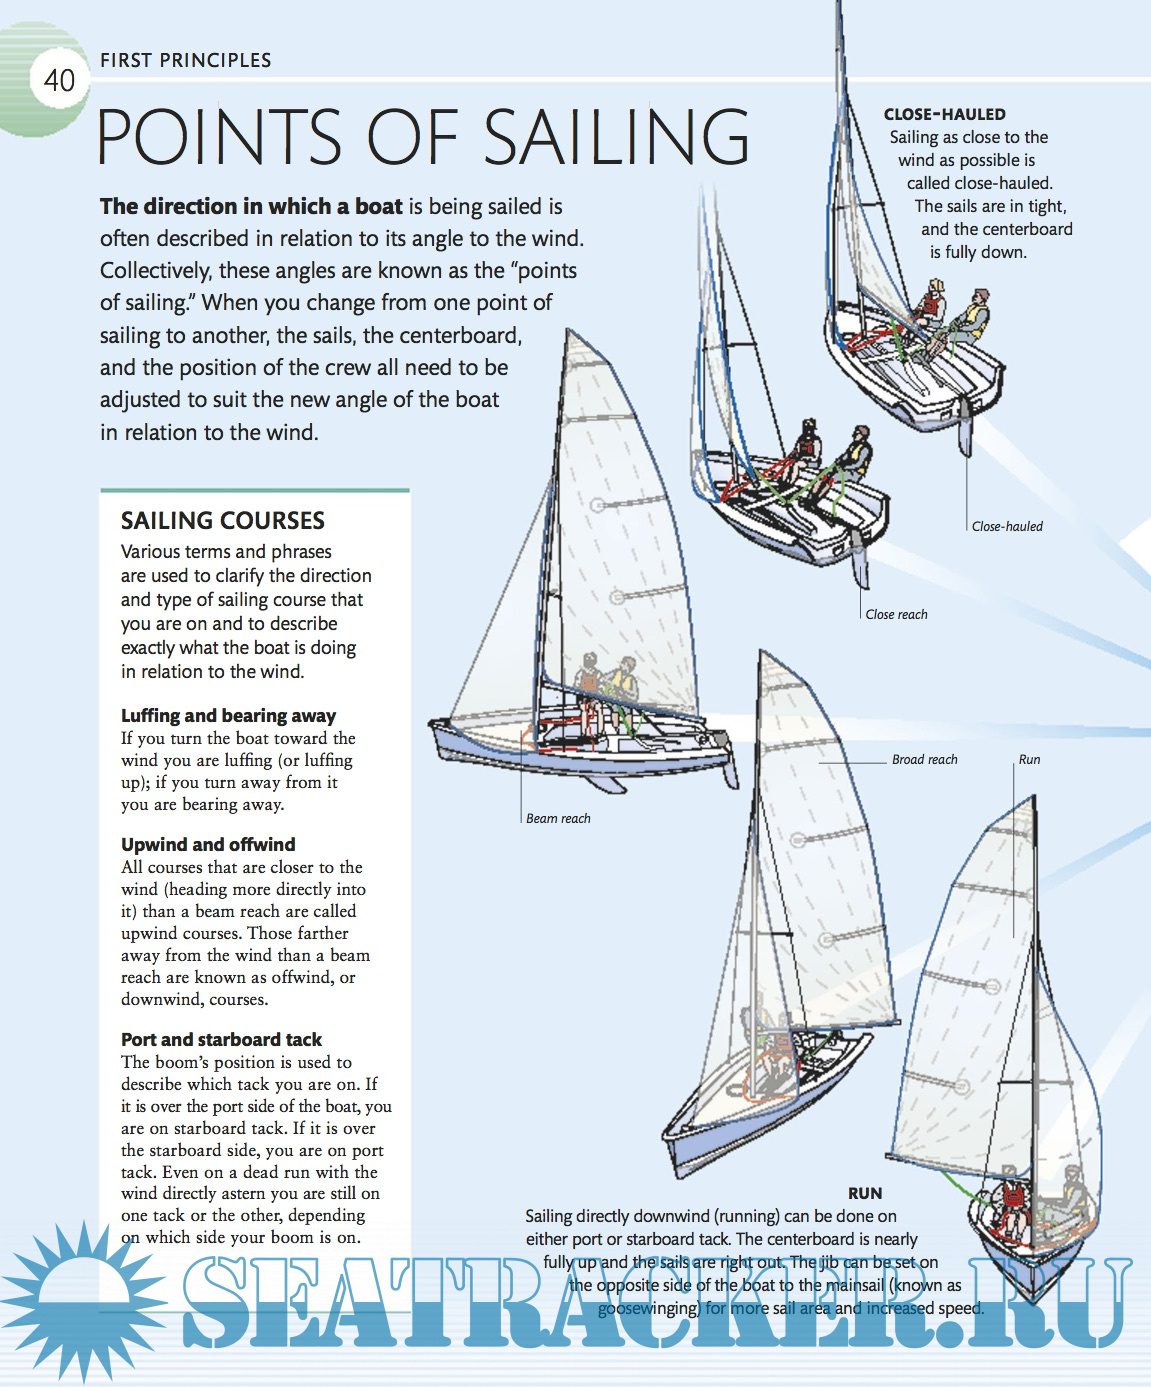 The Complete Sailing Manual Steve Sleight 2017 Pdf border=